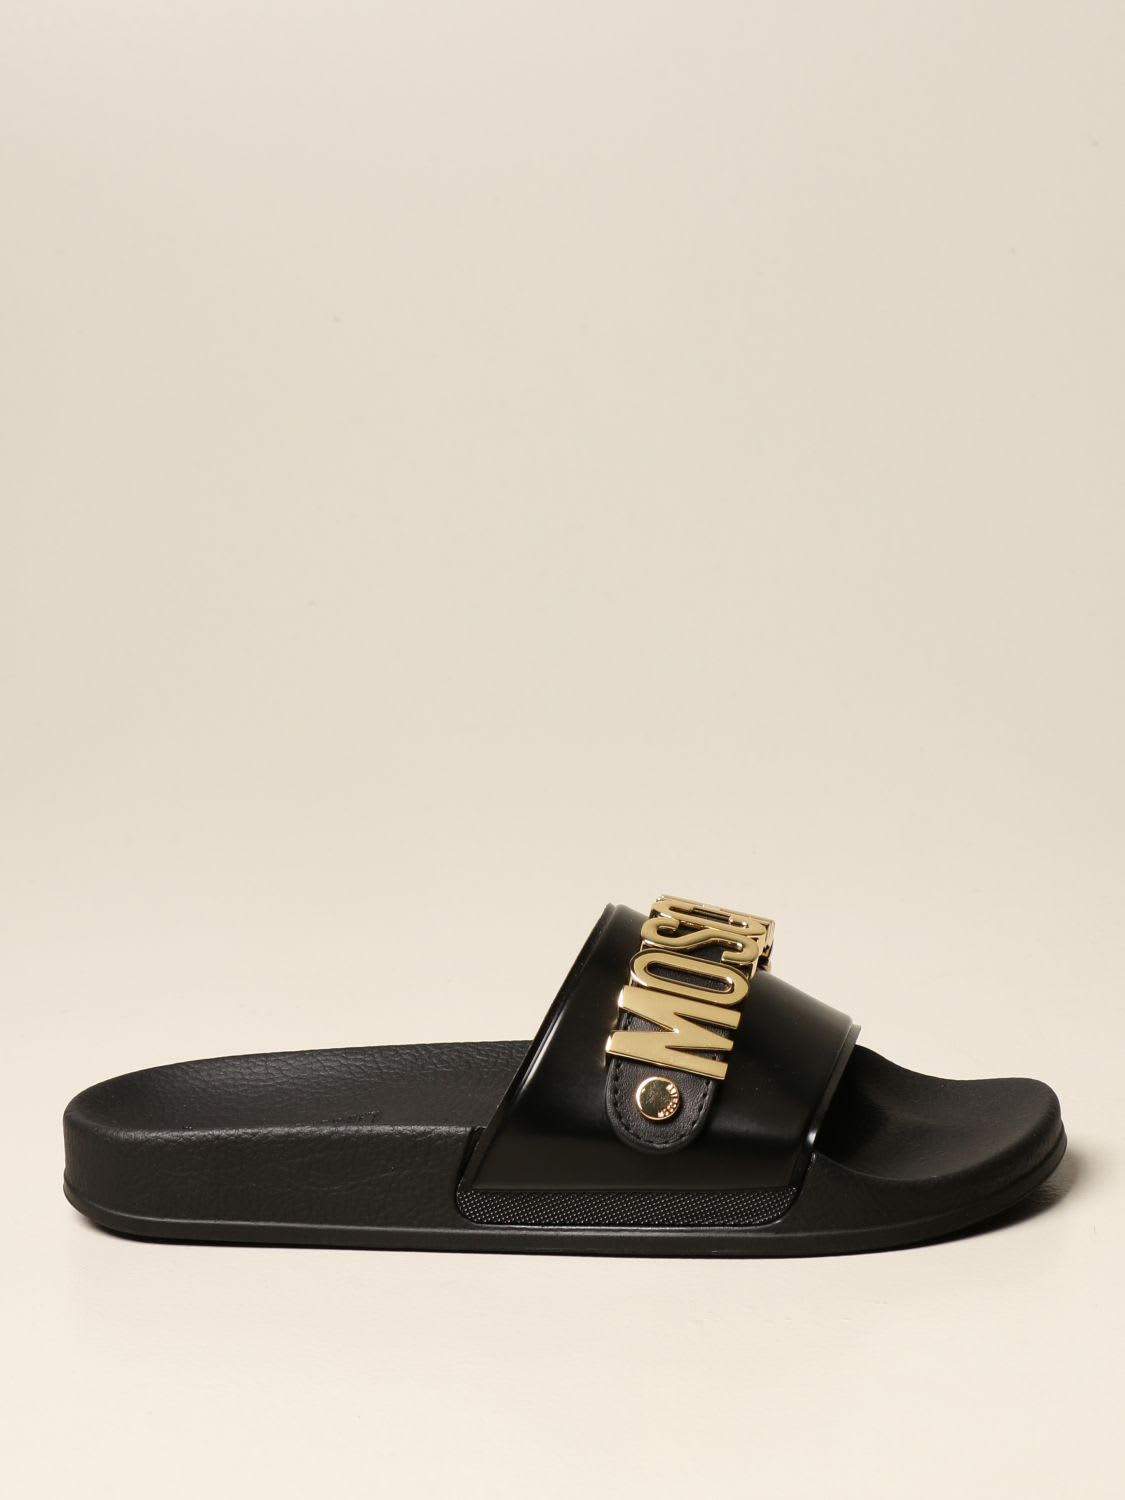 Moschino Couture Flat Sandals Moschino Couture Slipper Sandal In Rubber With Logo